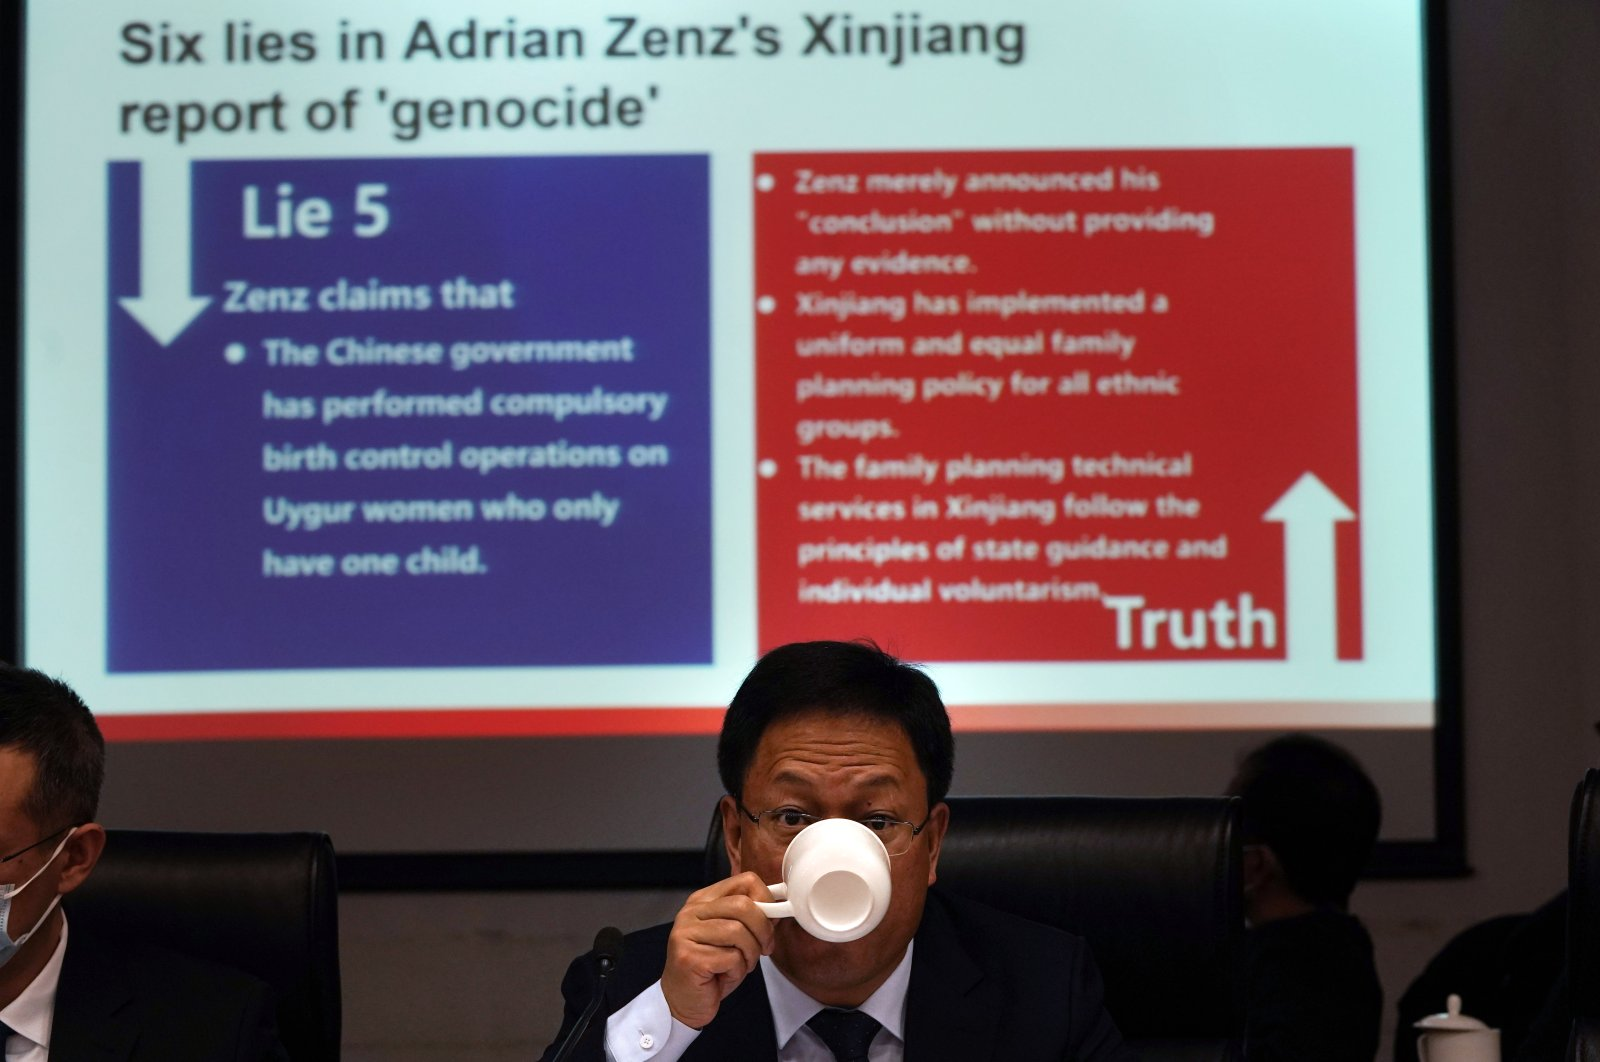 Xu Guixiang, a deputy spokesperson for the Xinjiang regional government, drinks from a cup near a slide refuting claims of genocide during a press conference in Beijing, China, Jan. 11, 2021. (AP Photo)